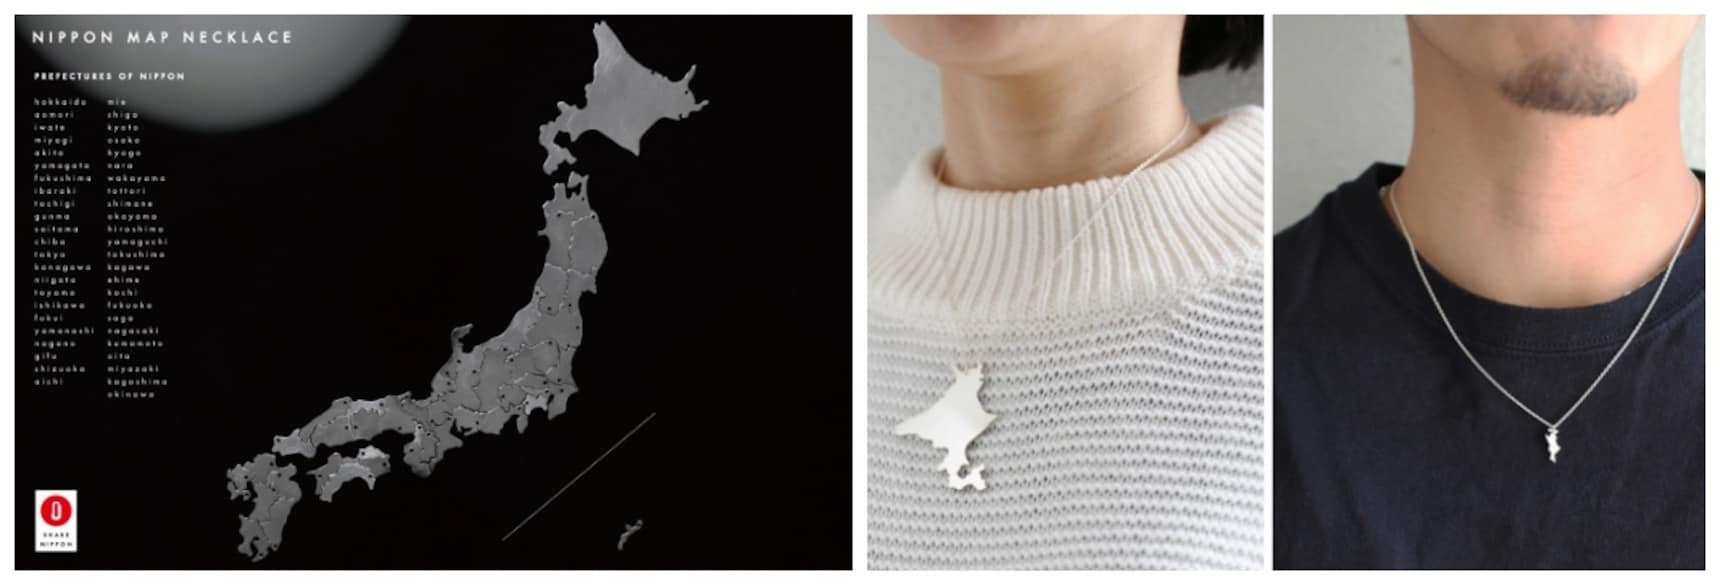 Rep Your Prefectural Pride with Cool Necklaces